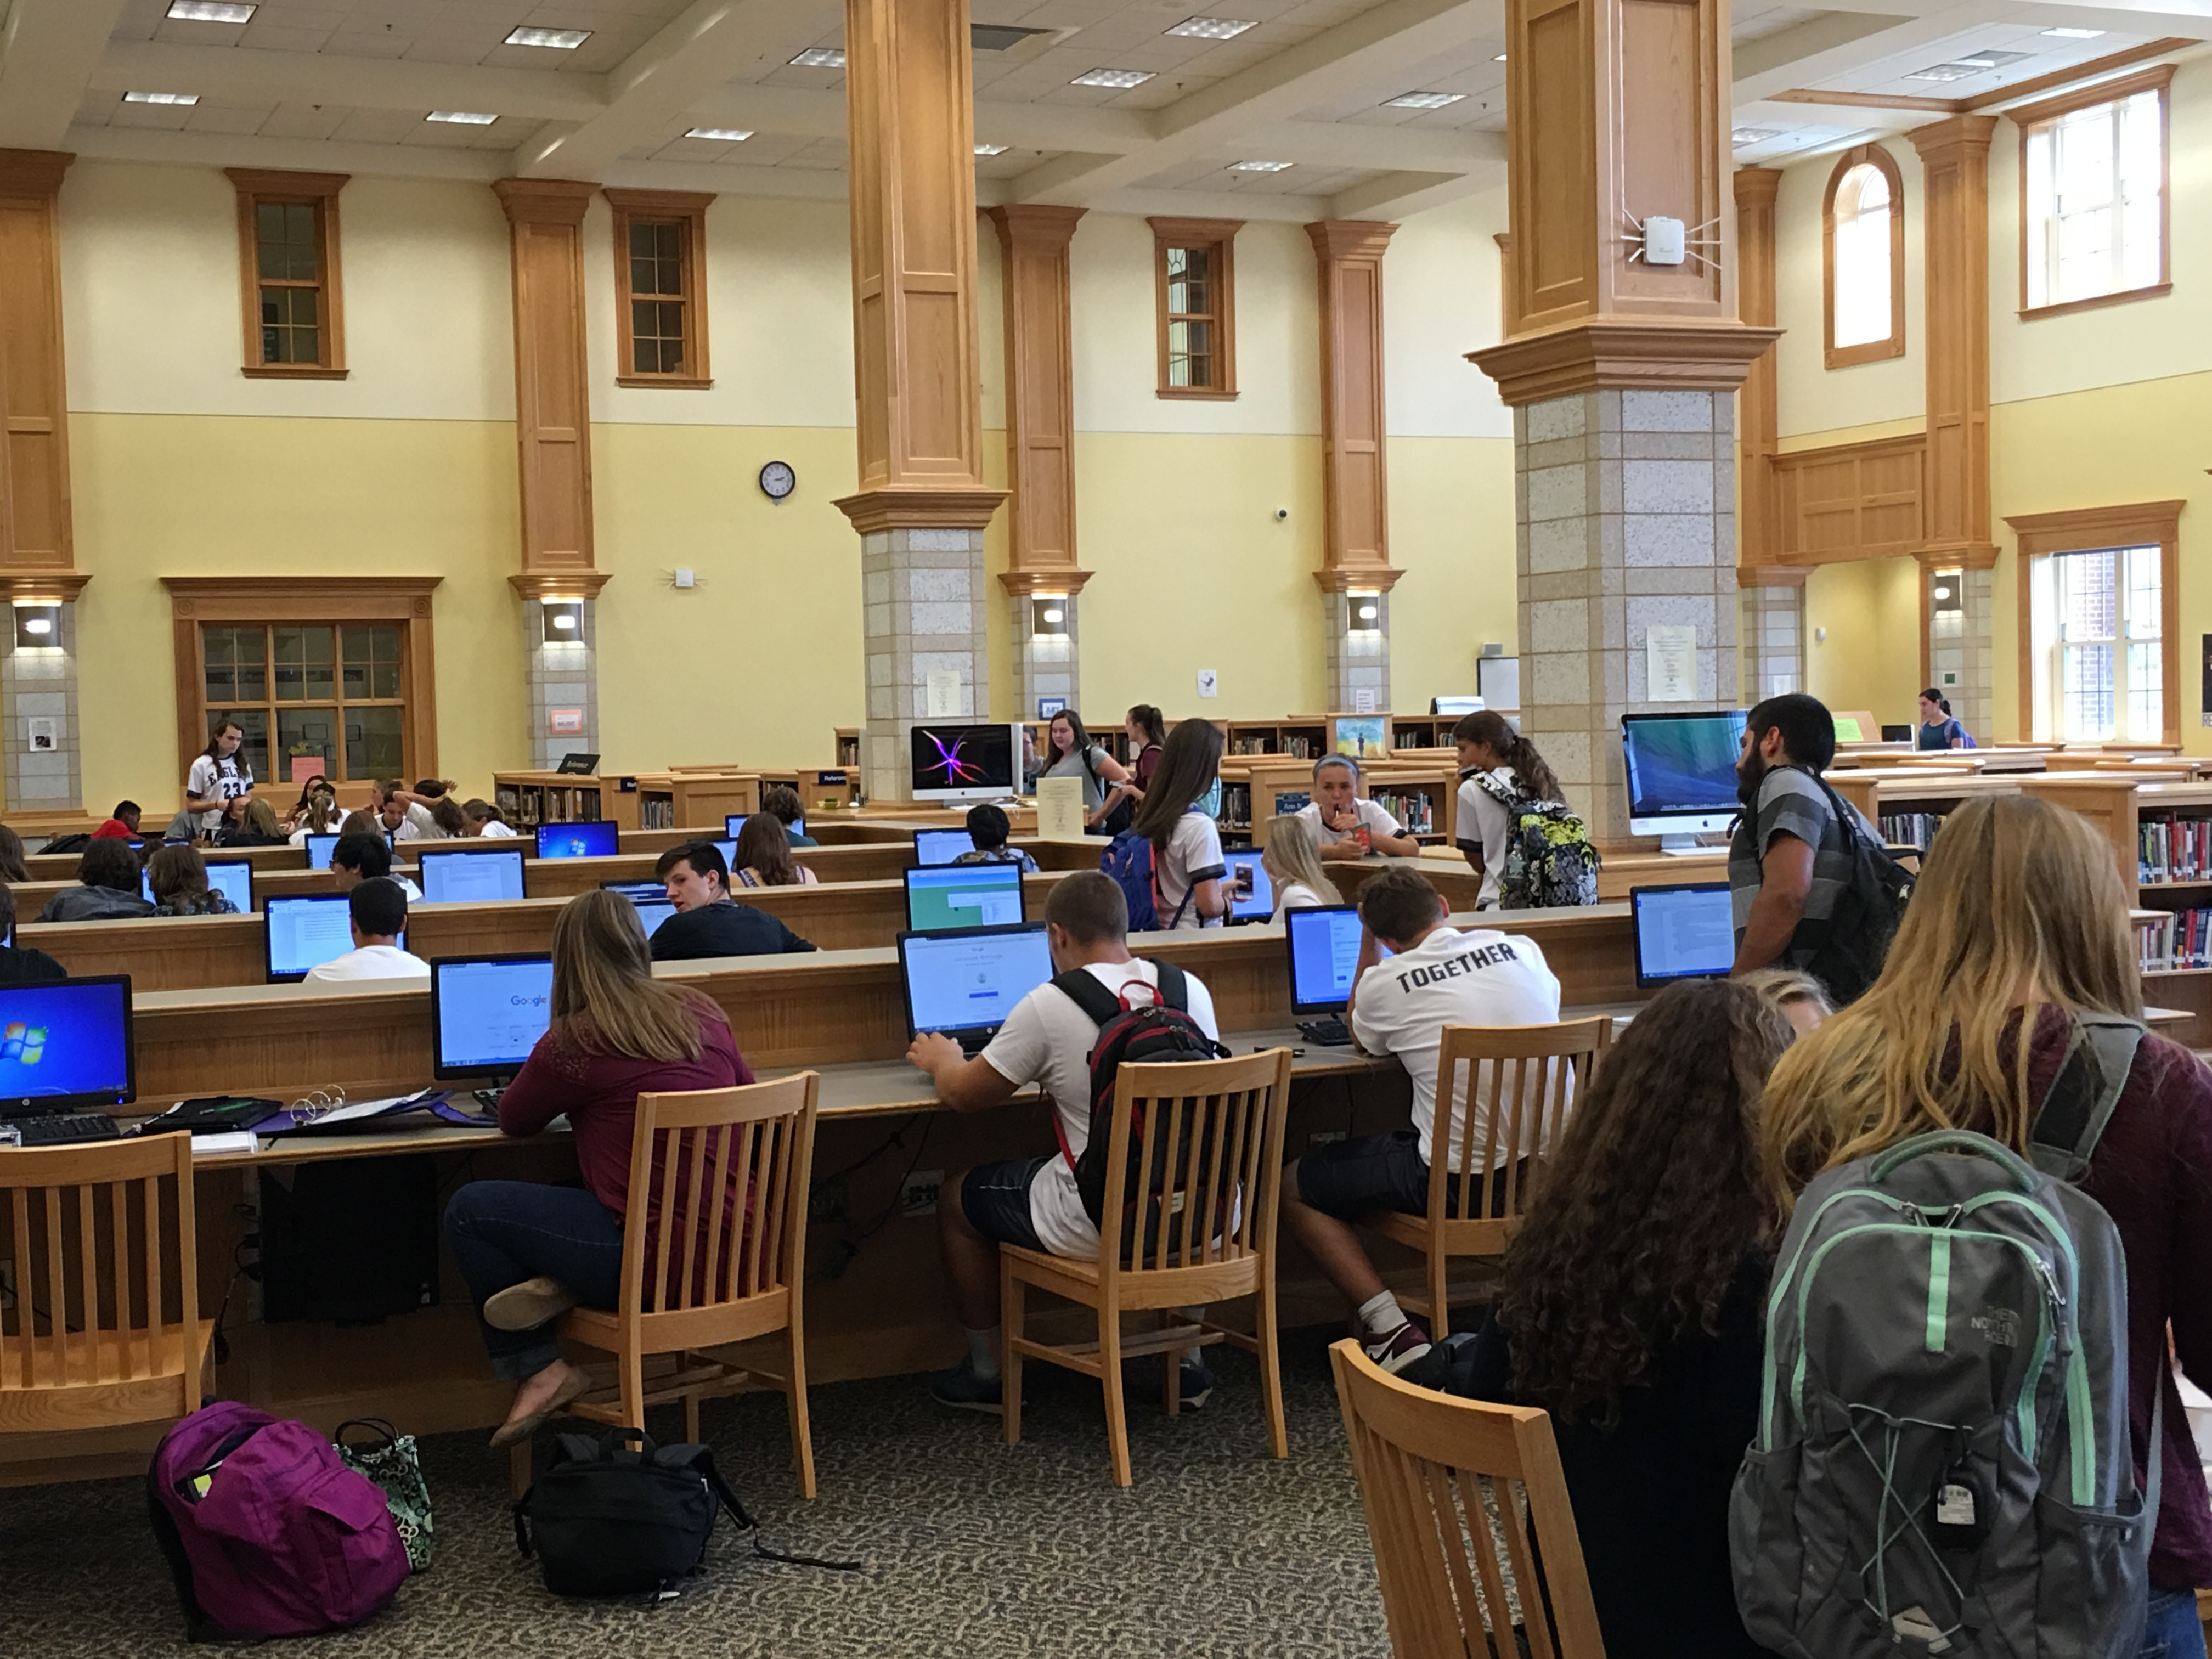 Home - Plymouth North High School Learning Commons - LibGuides at